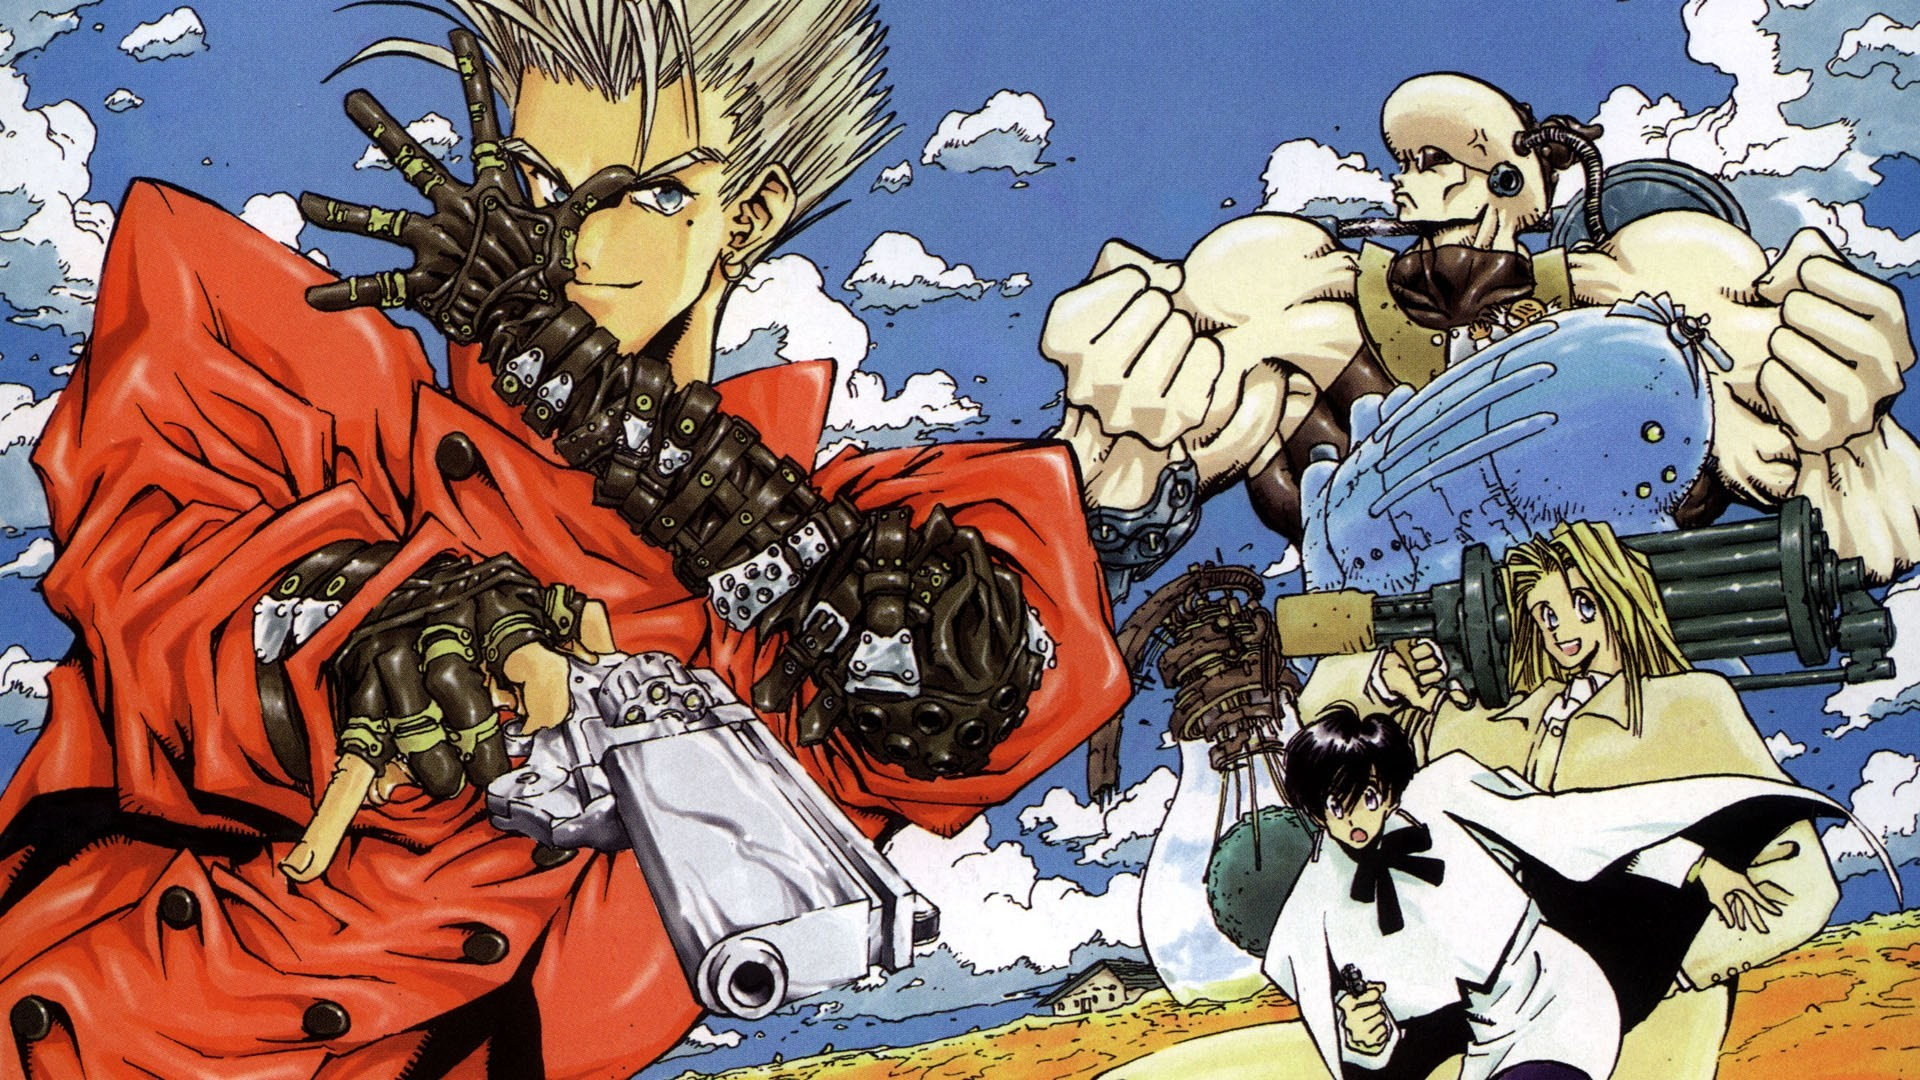 Res: 1920x1080, Vash the Stampede Trigun 1080p HD Wallpaper Background